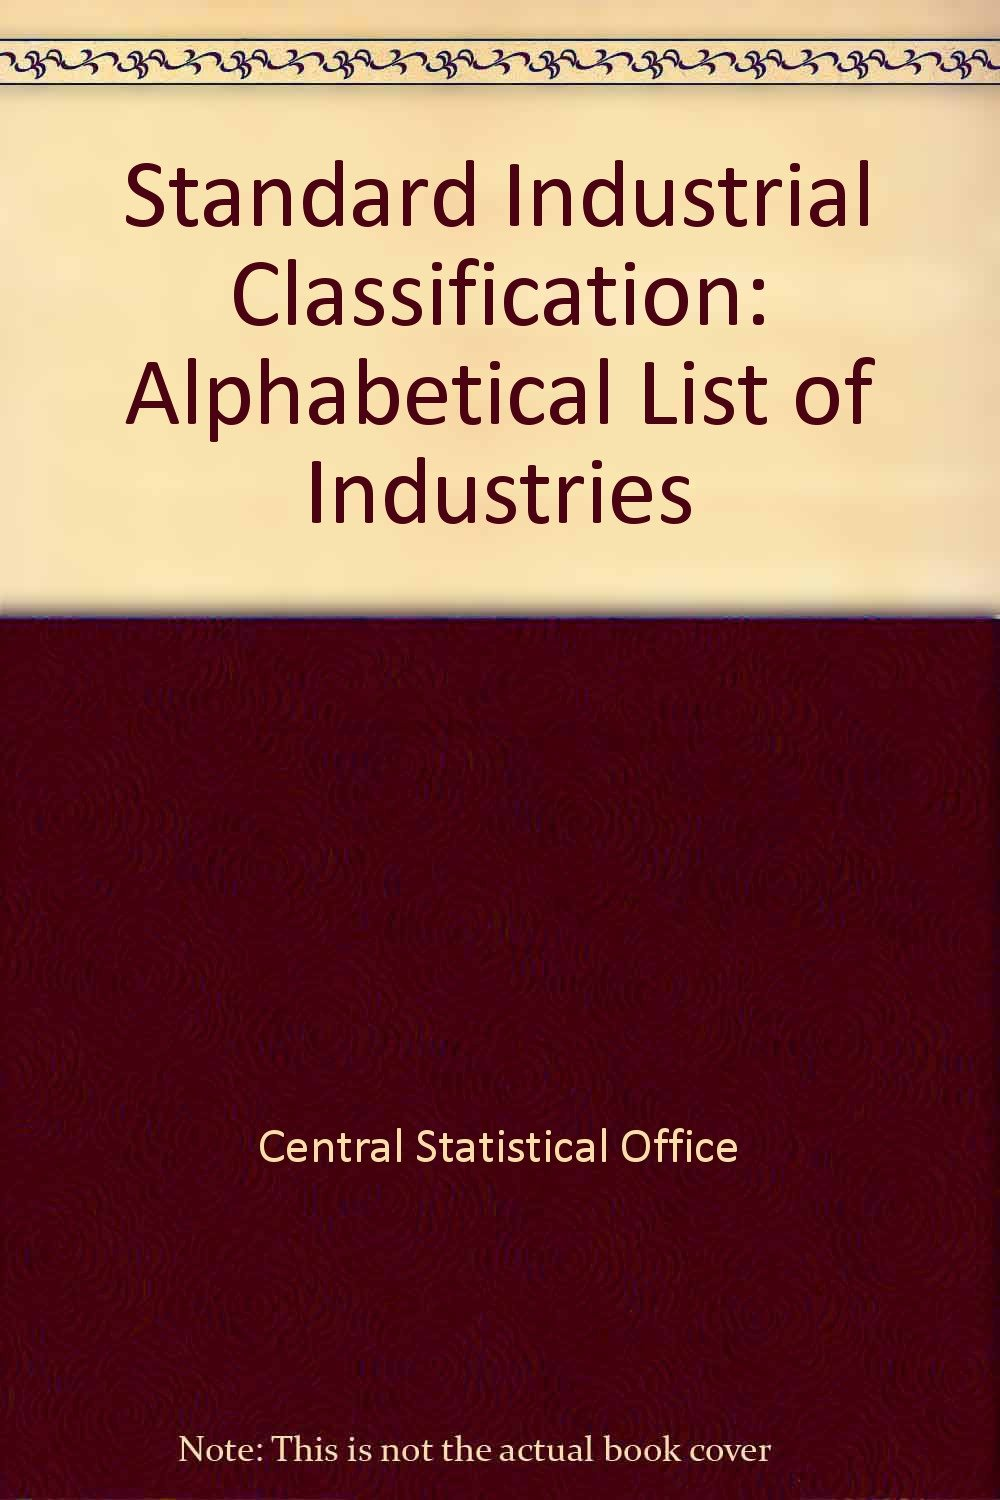 Standard Industrial Classification: Alphabetical List of Industries